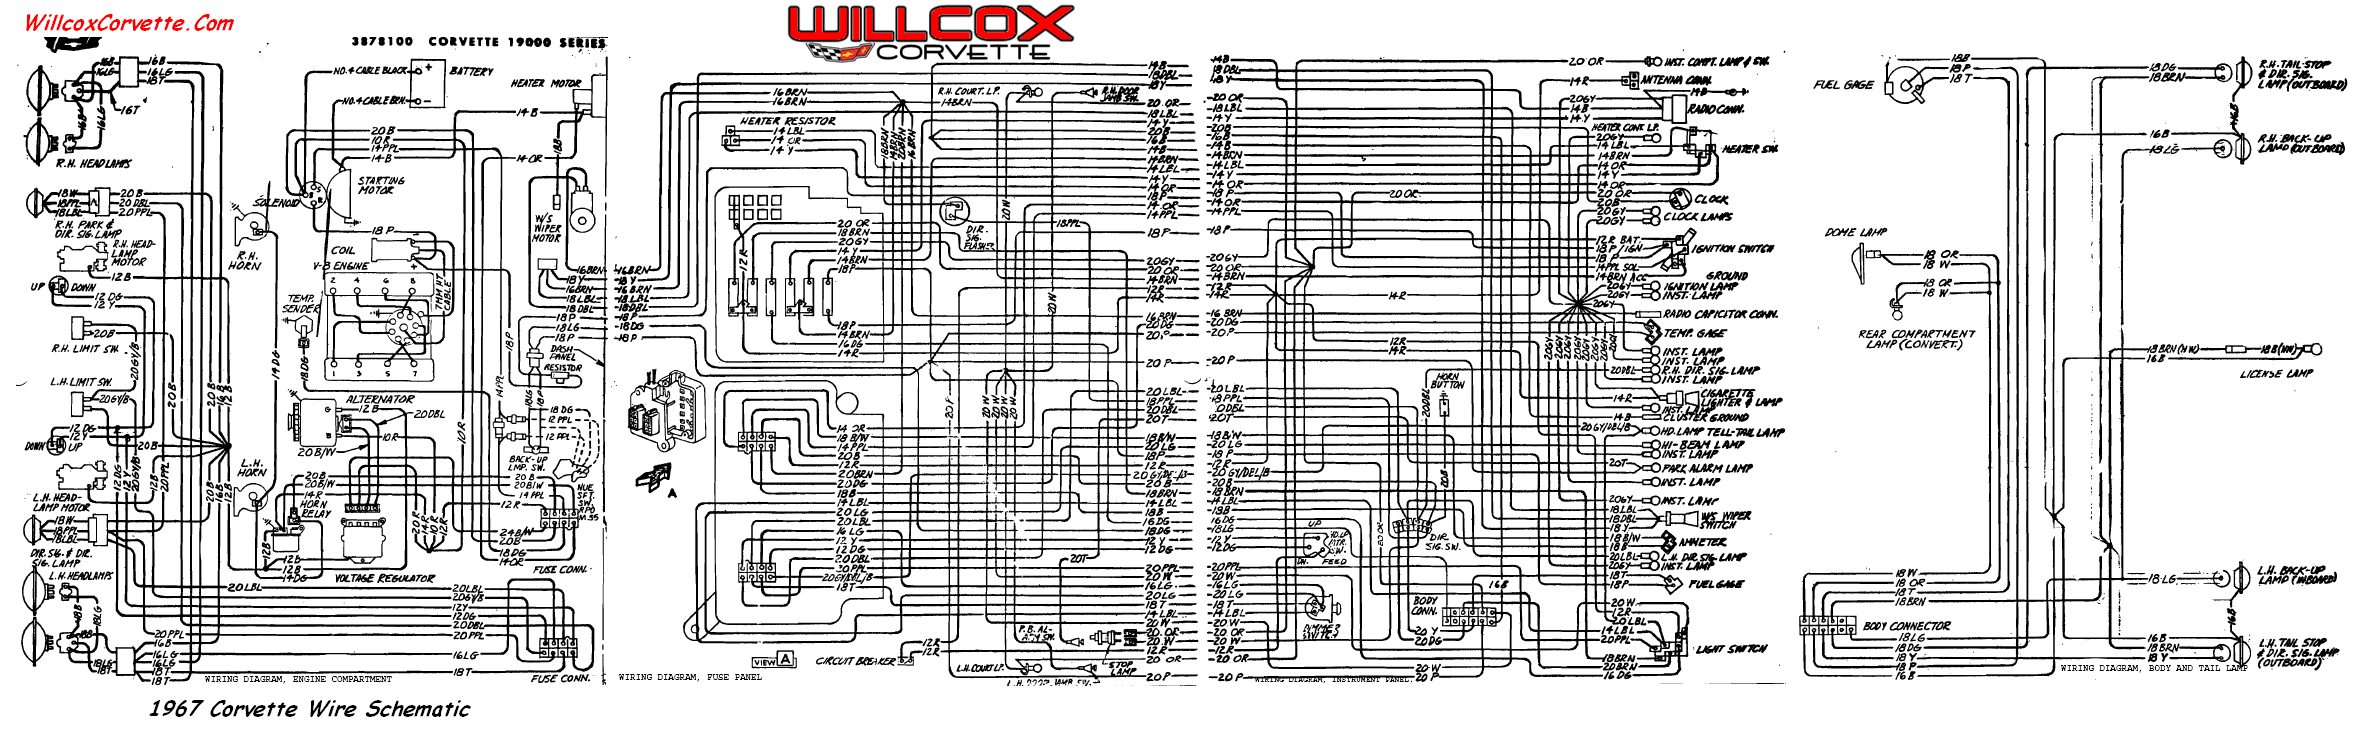 67 wire schematic for tracing wires 1967 corvette wiring diagram (tracer schematic) willcox corvette 1984 corvette wiring diagram schematic at mifinder.co